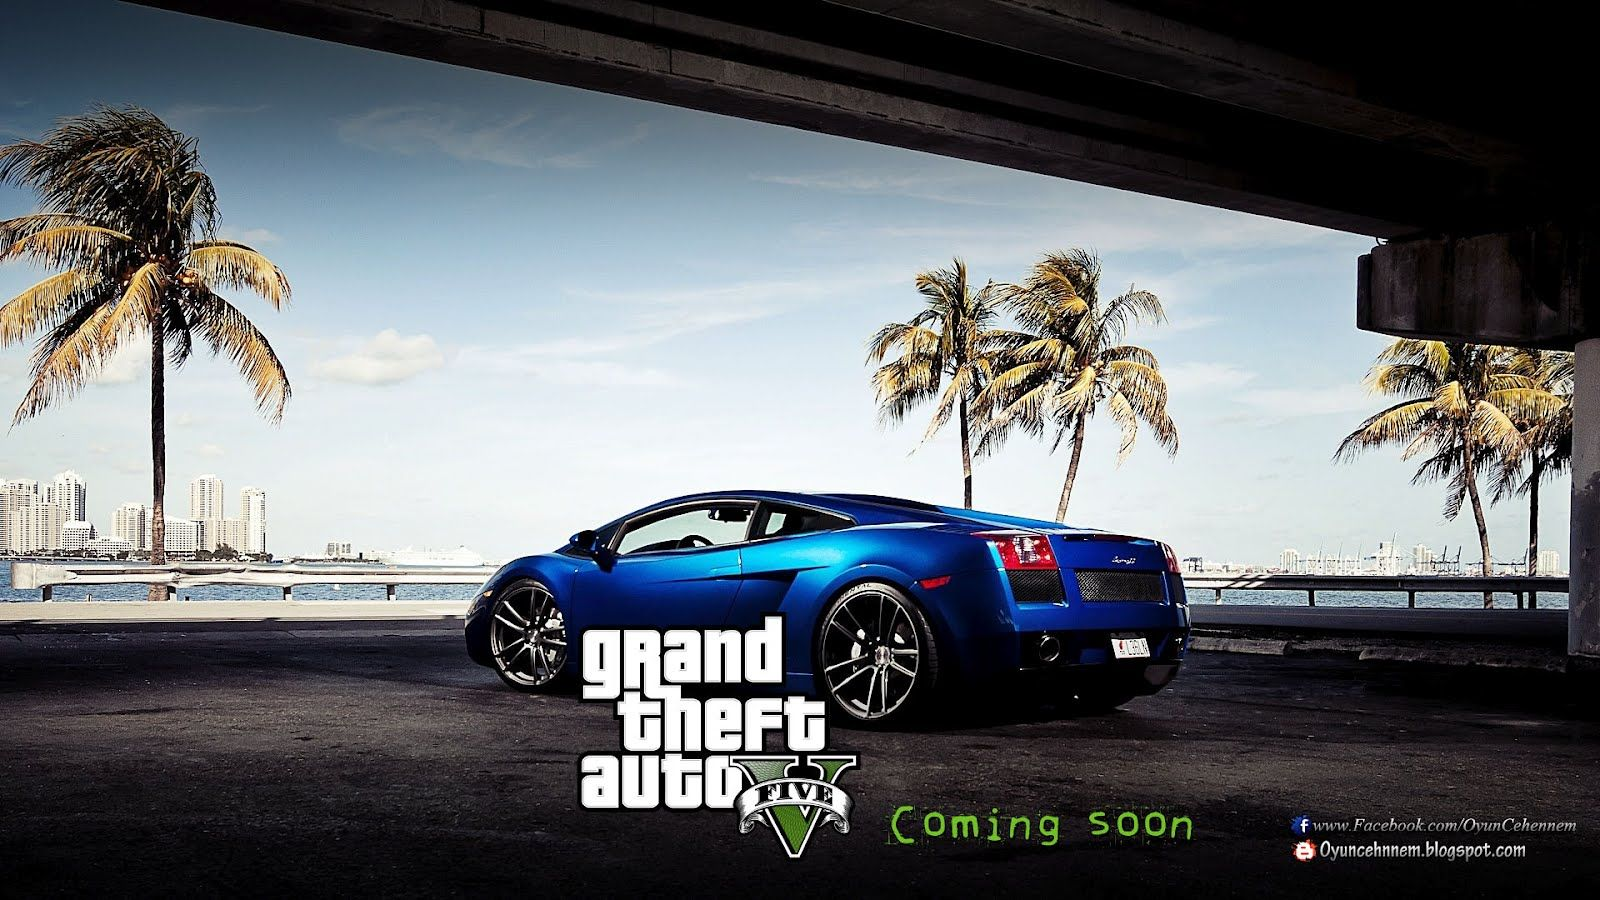 This application contains a collection of the best gta 5 and backgrounds for your chrome. Gta 5 Car Wallpaper Hd 1600x900 Wallpaper Teahub Io